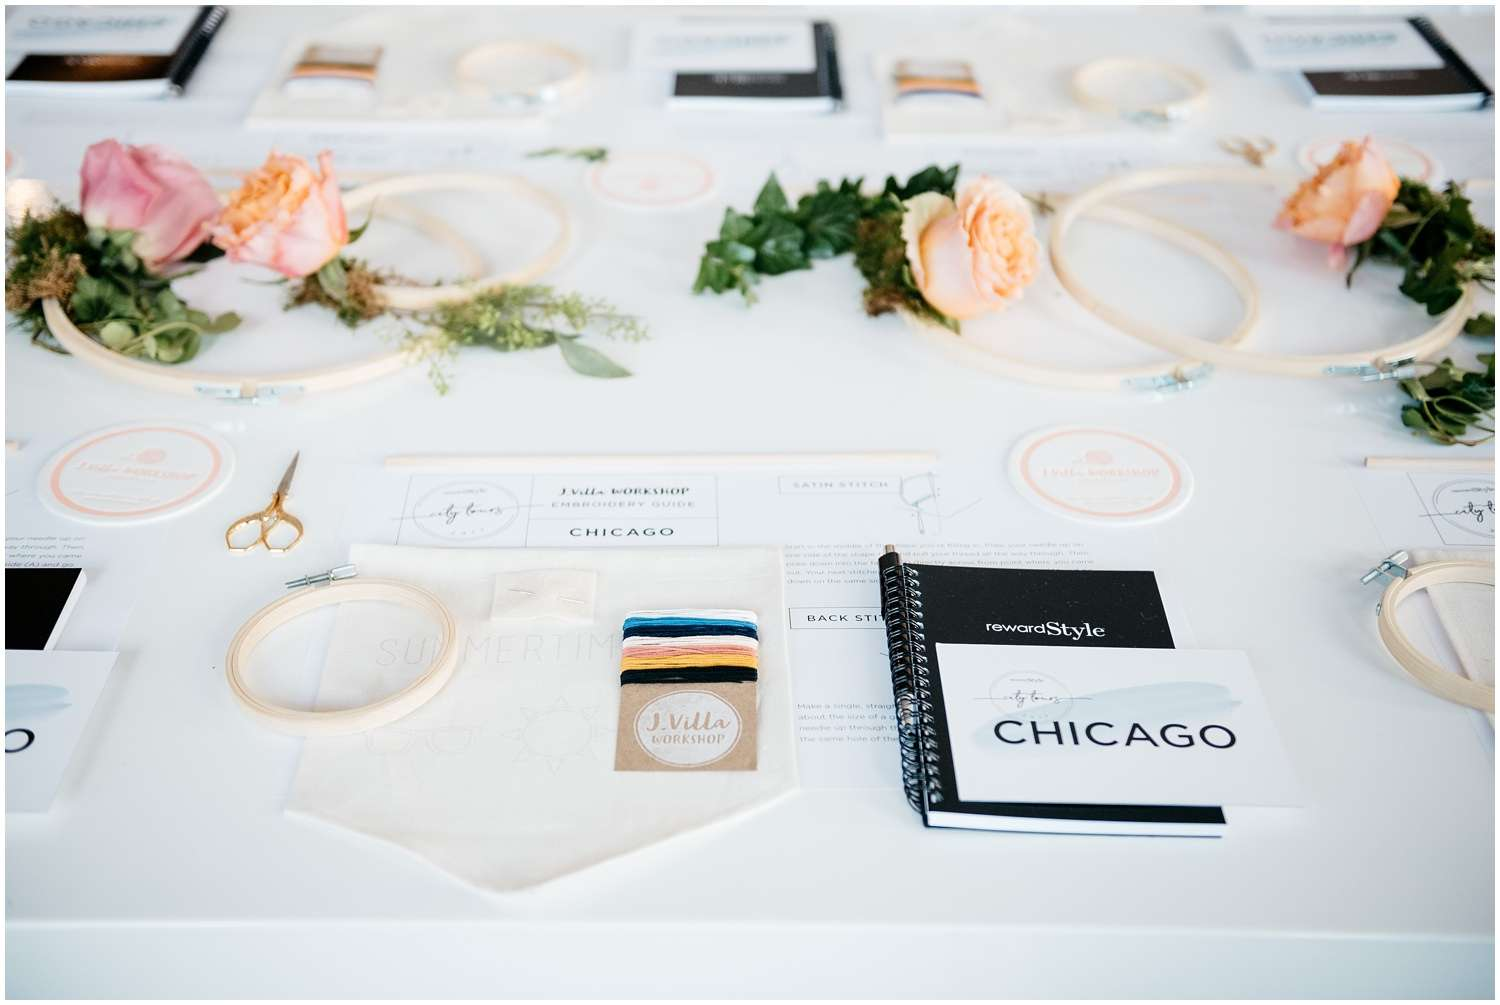 rewardstyle, reward style, rscitytours, city tour, chicago, lifestyle, fashion, event, oliver dogwood floral co, oliver dogwood, photographer, photography, fashion, lollapalooza, lolla, startedwithascreenshot, Matthew Rachman Gallery, embroidery, j villa, j villa workshop,